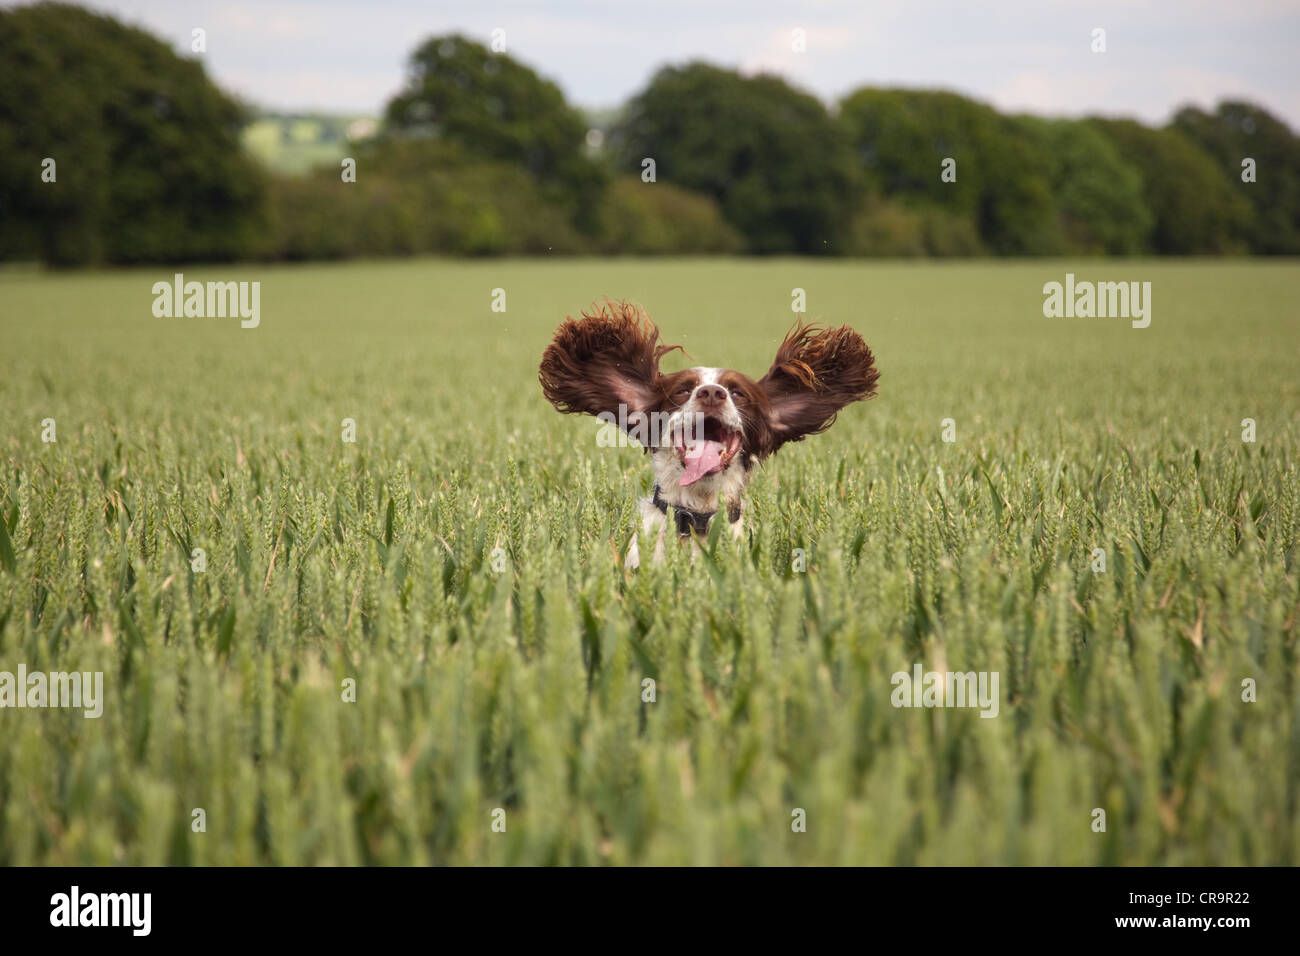 Cocker Spaniel running through growing wheat - Stock Image